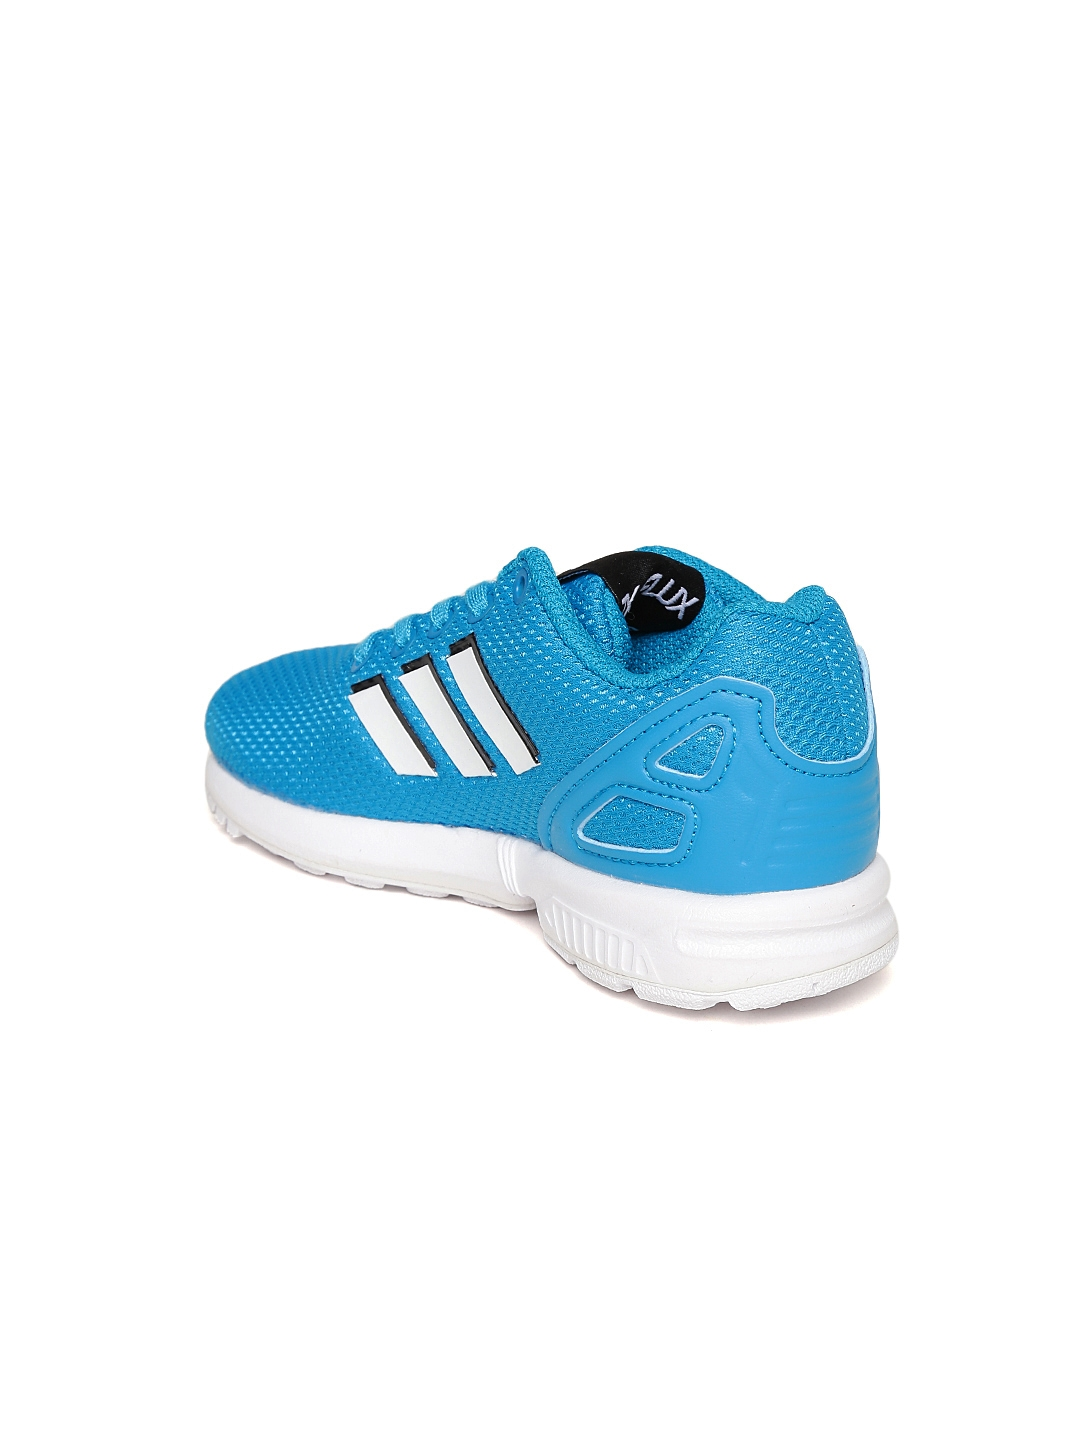 15aee350c1e84 Buy ADIDAS Originals Kids Blue ZX FLUX C Sneakers - Casual Shoes for ...